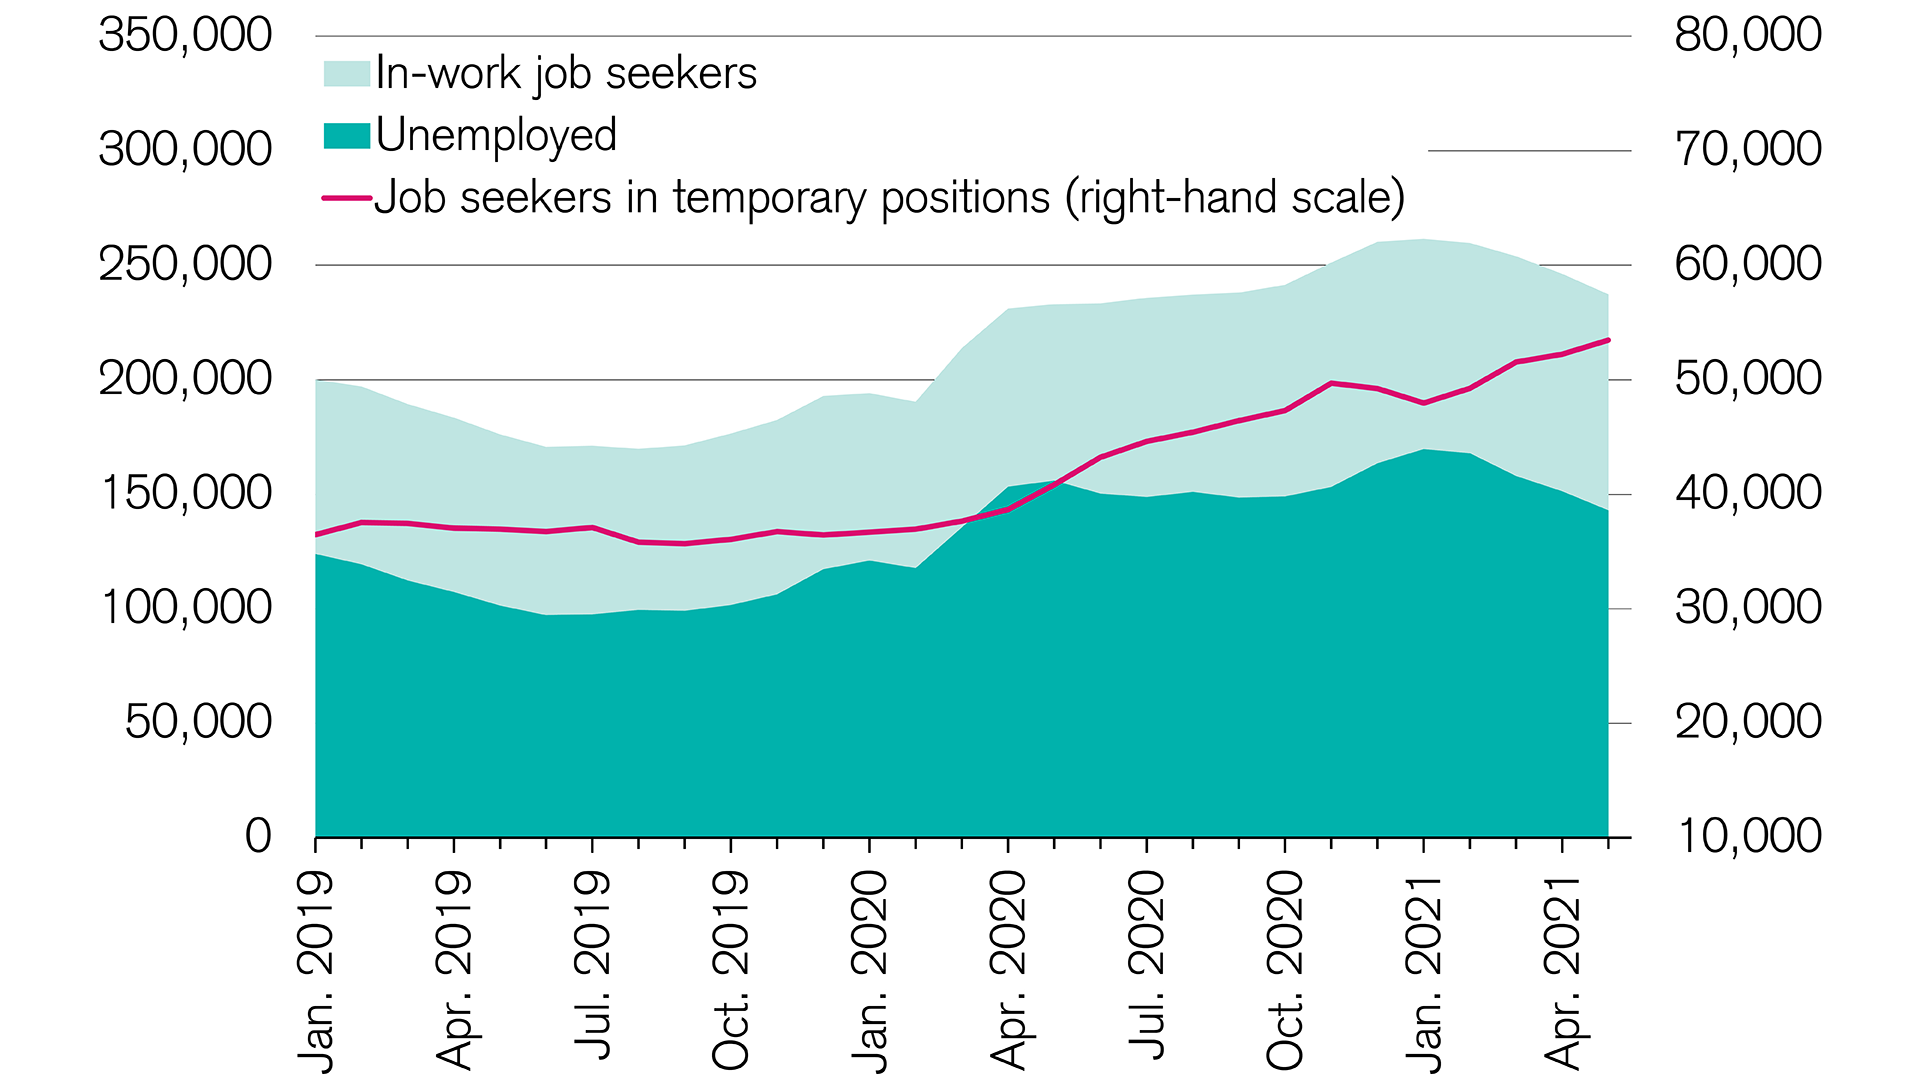 Swiss economy: Many employees in temporary positions while seeking work